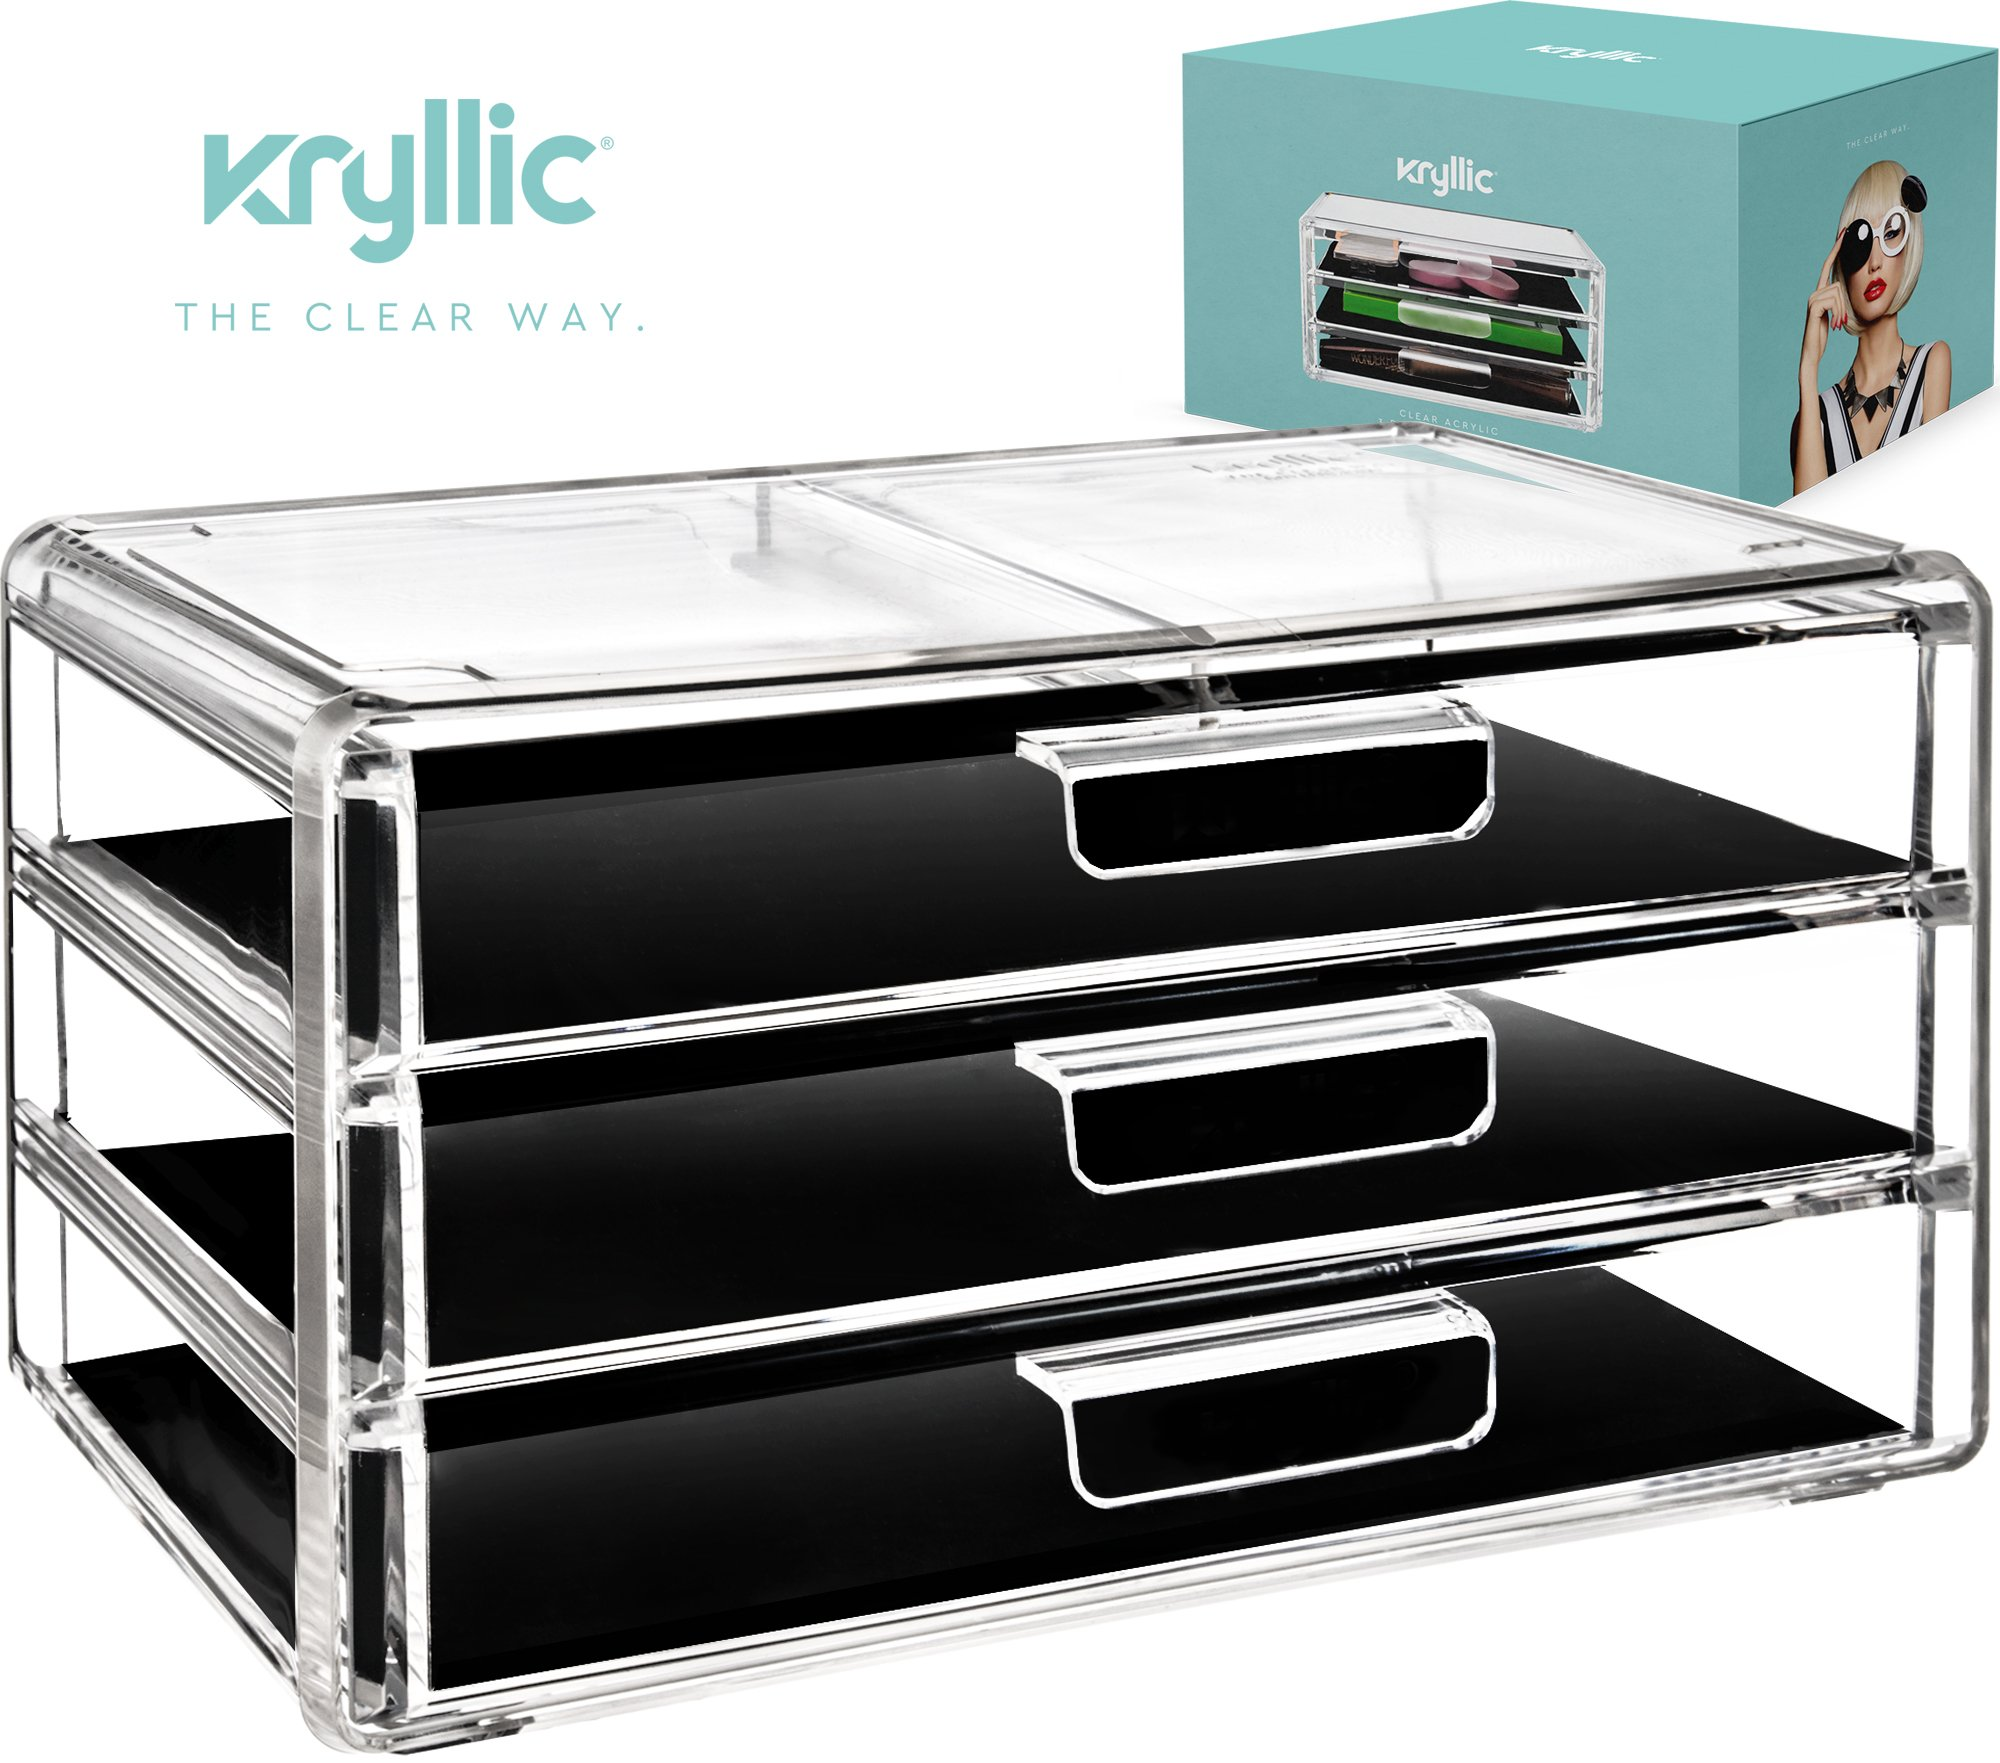 Acrylic Makeup Jewelry Cosmetic Organizer - Clear Acrylic Display Storage for Jewelry Makeup Pallets & all Bathroom Accessories keep your Vanity & Dresser Organized with set of 3 Drawers